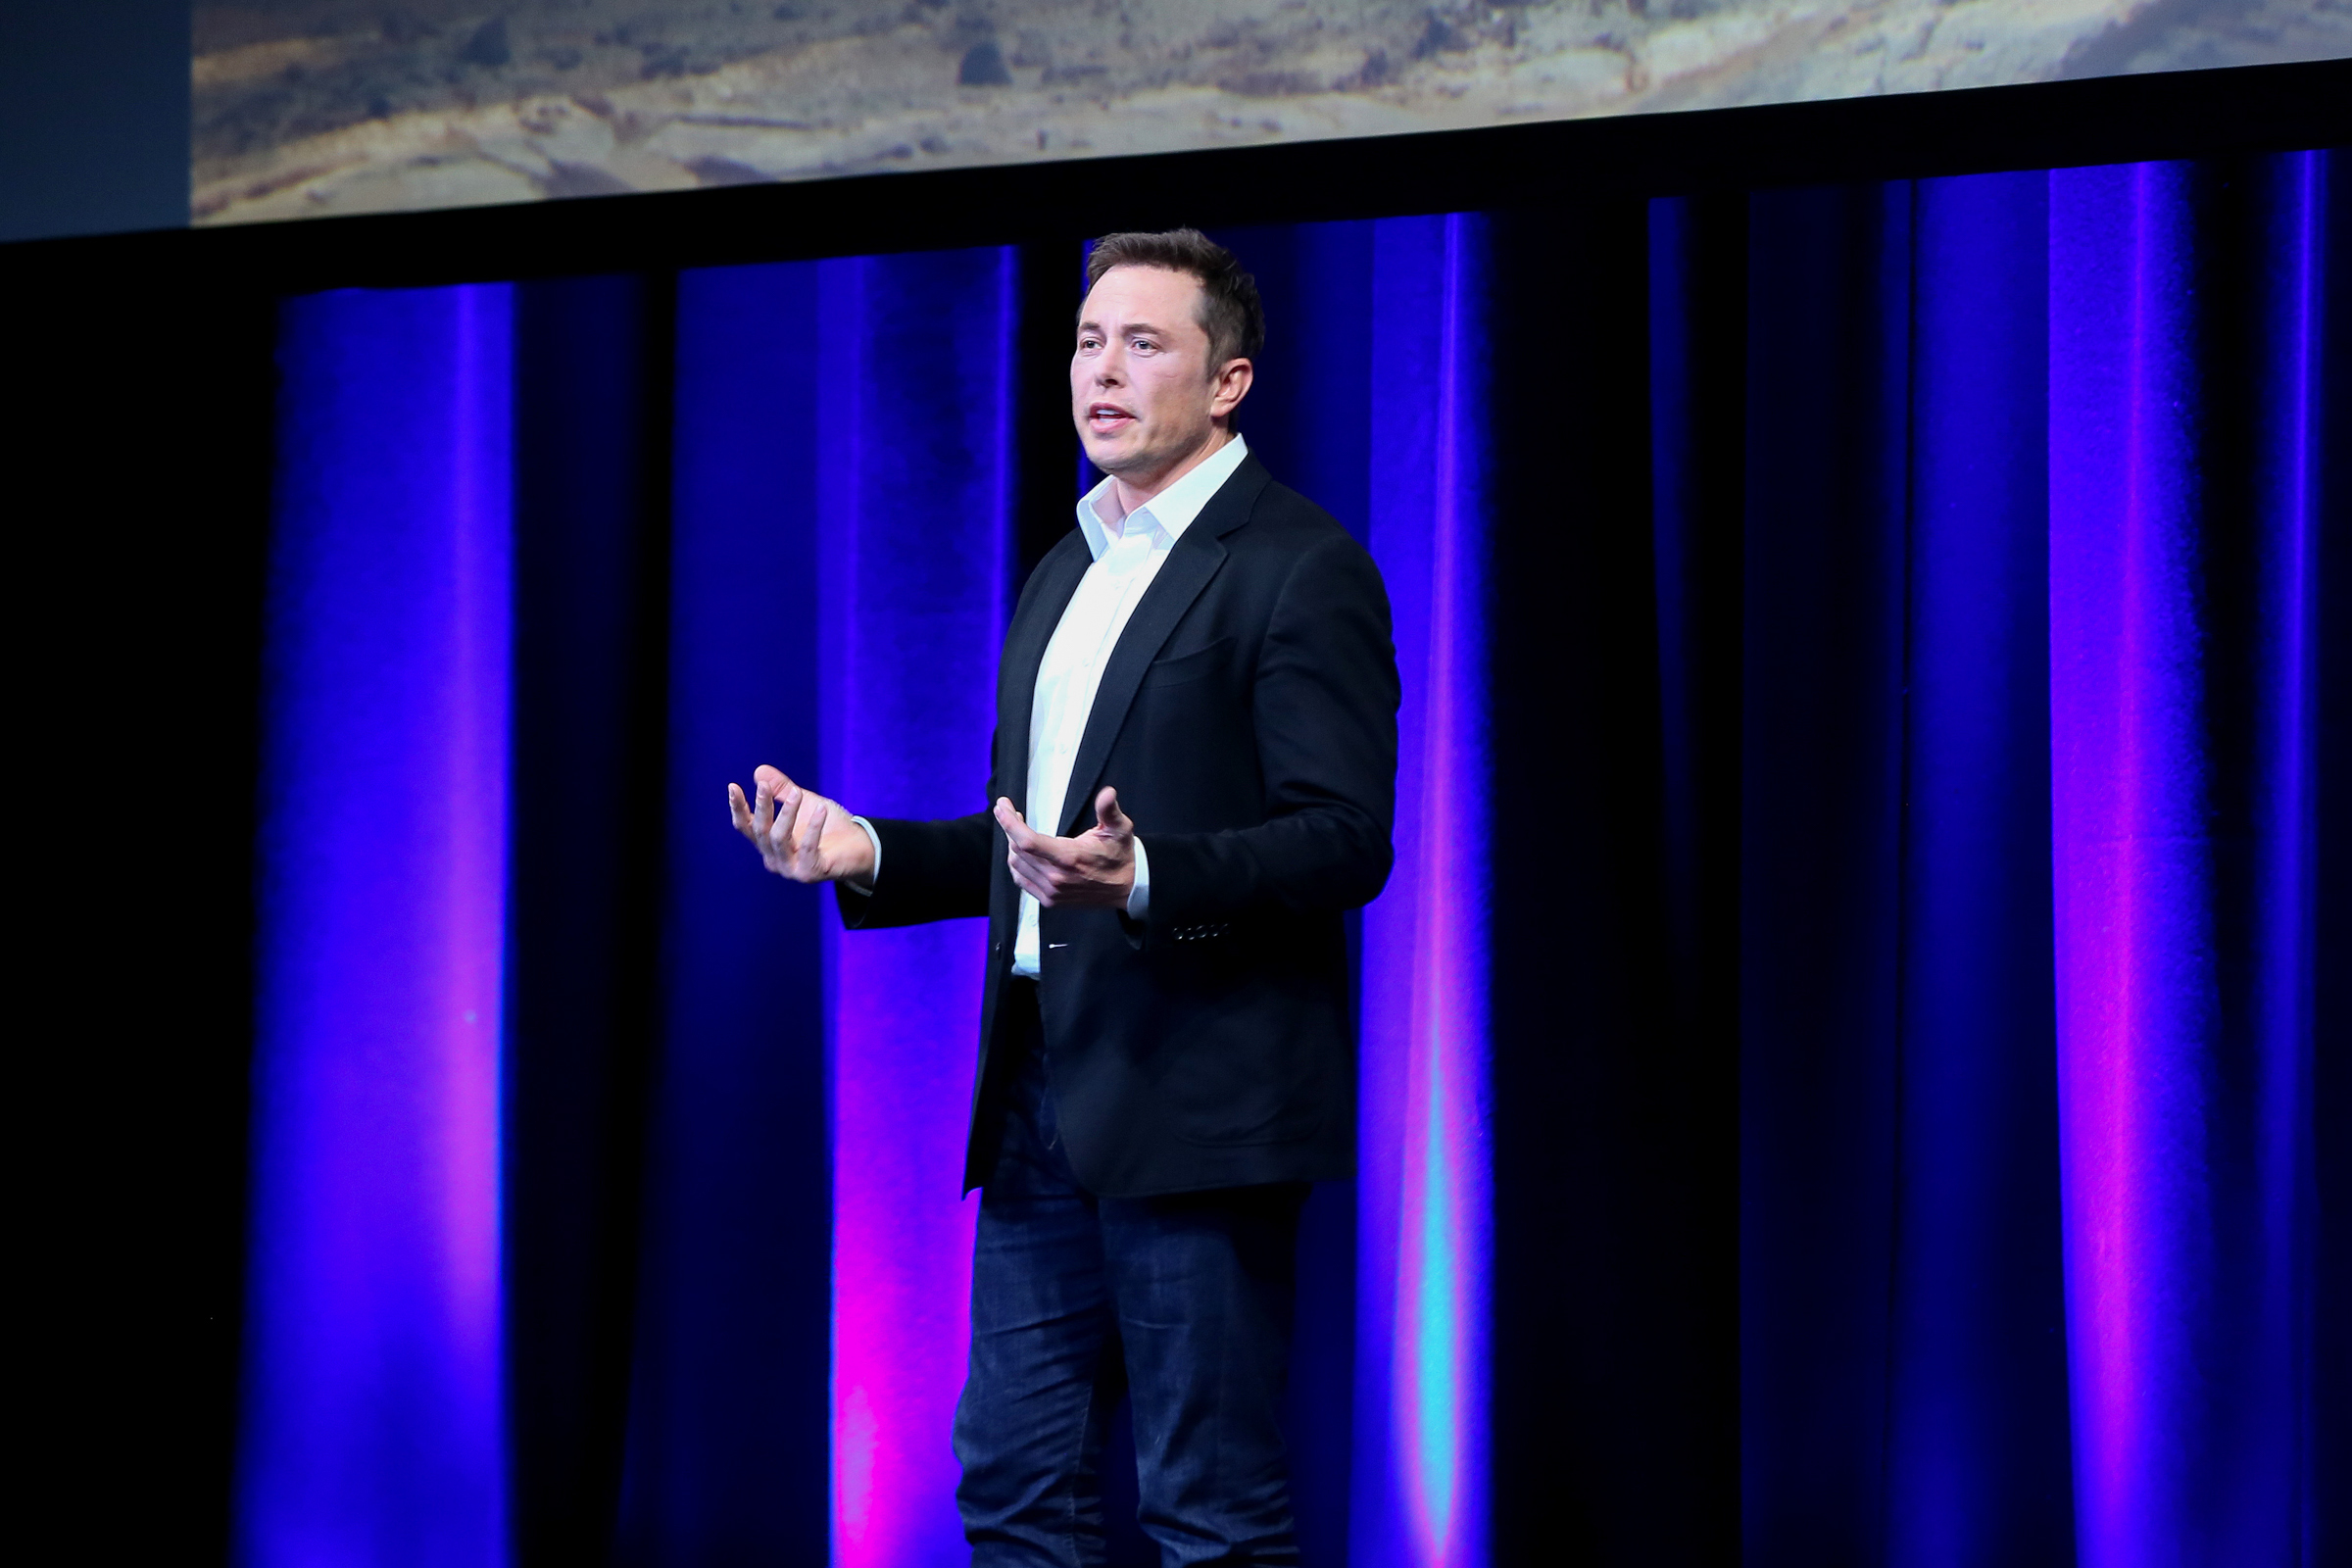 Elon Musk has postponed the presentation of the Tesla truck Semi